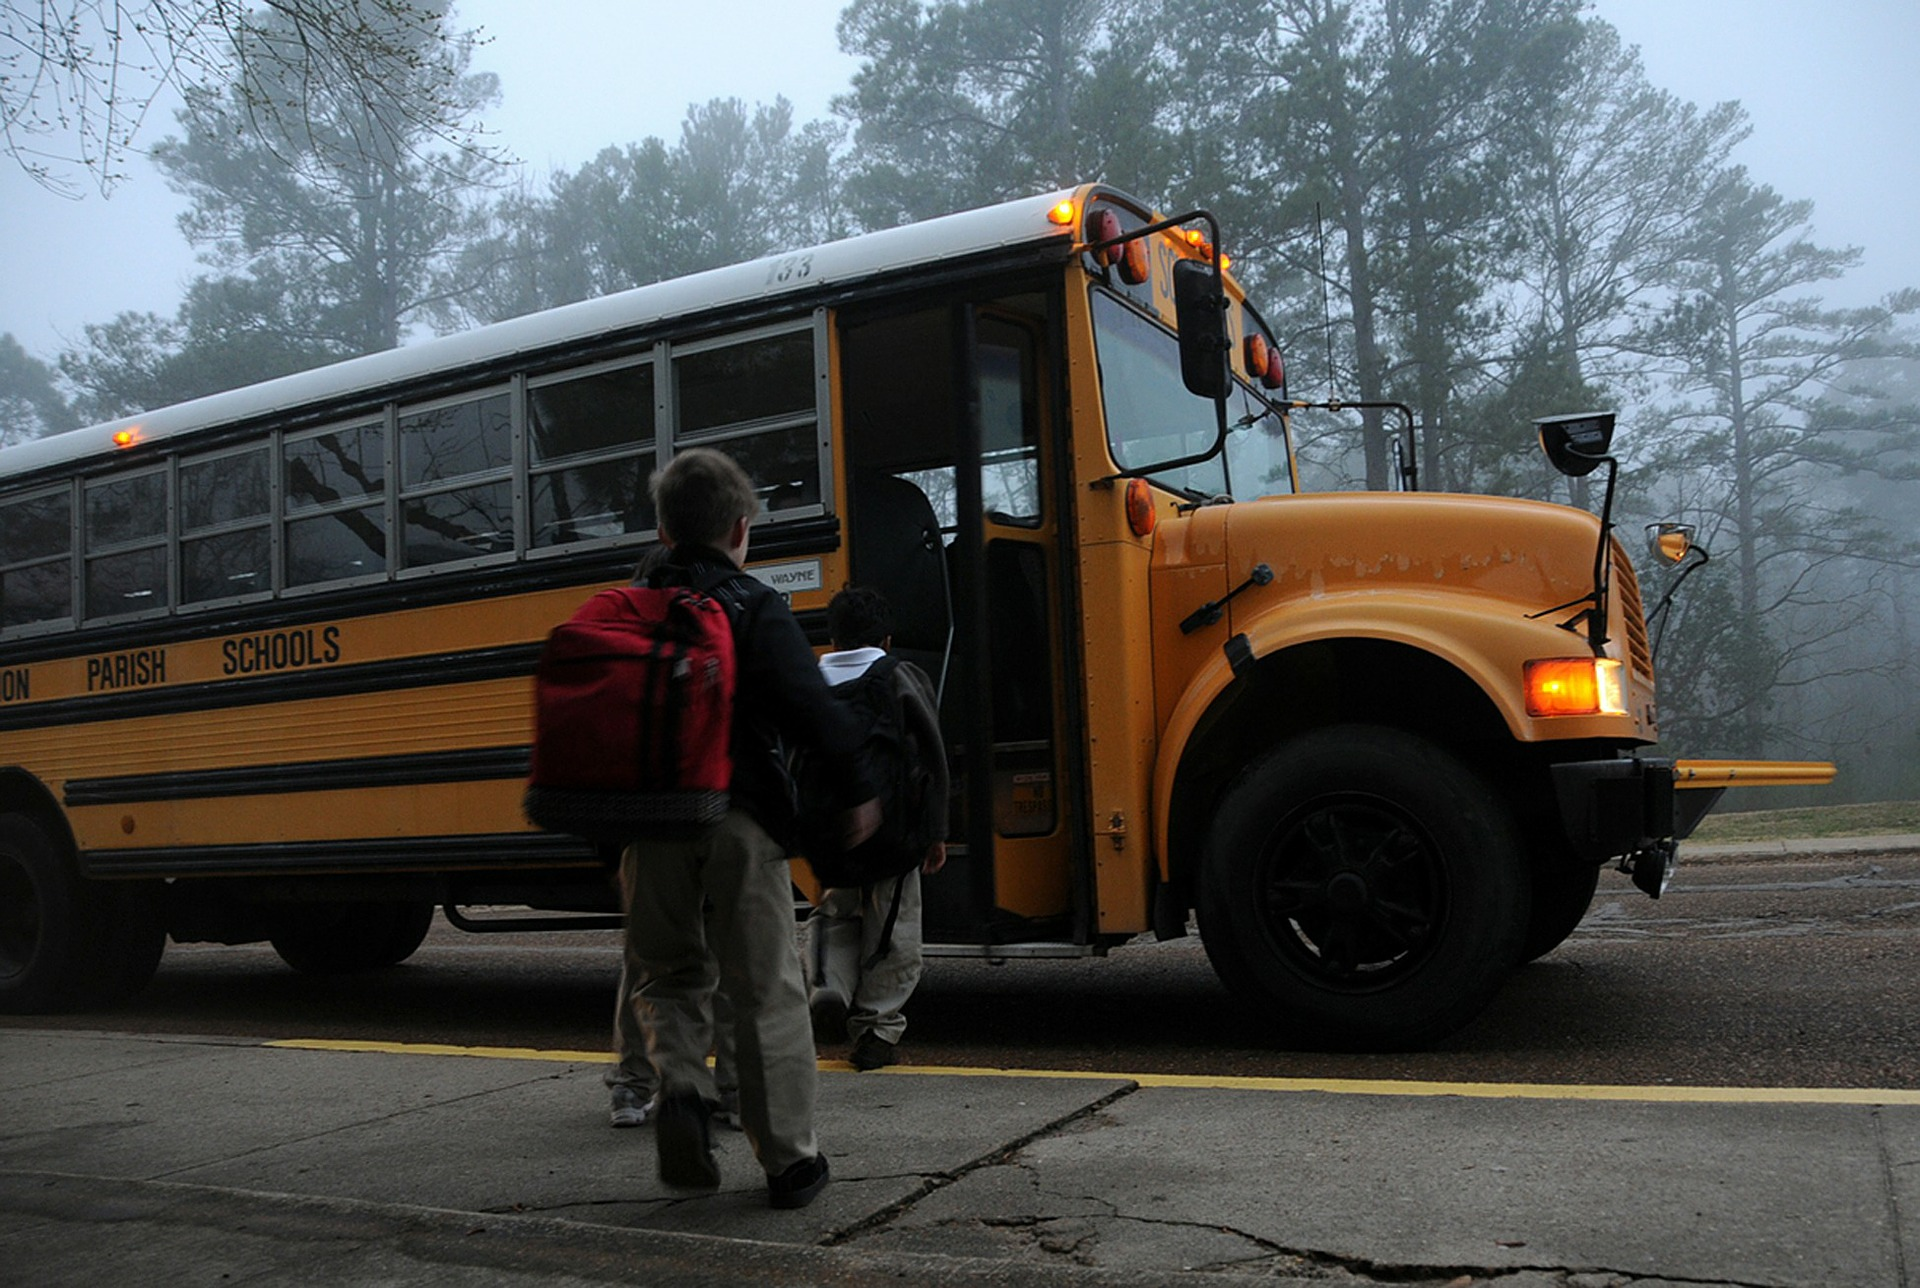 Security-Cameras-for-School-Buses